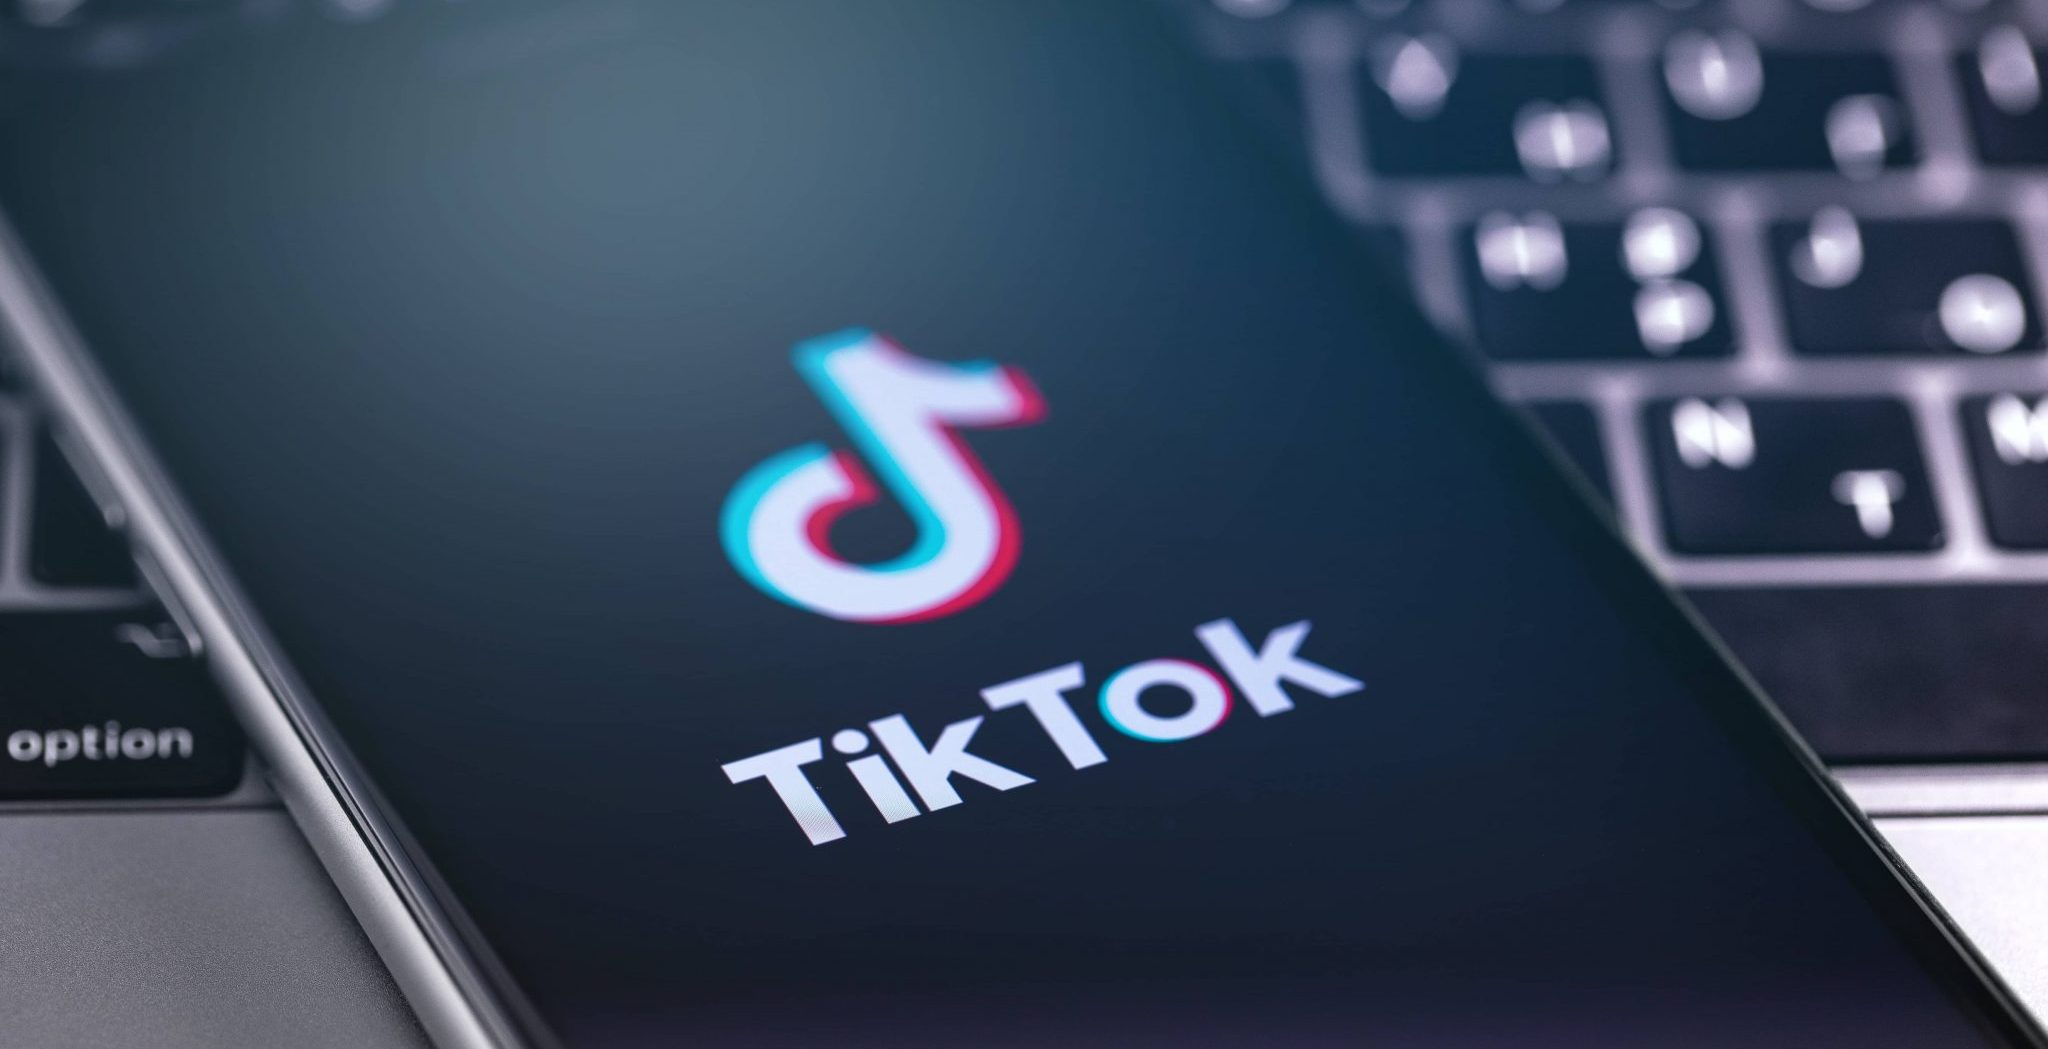 The Controversy and Security Concerns Involving TikTok